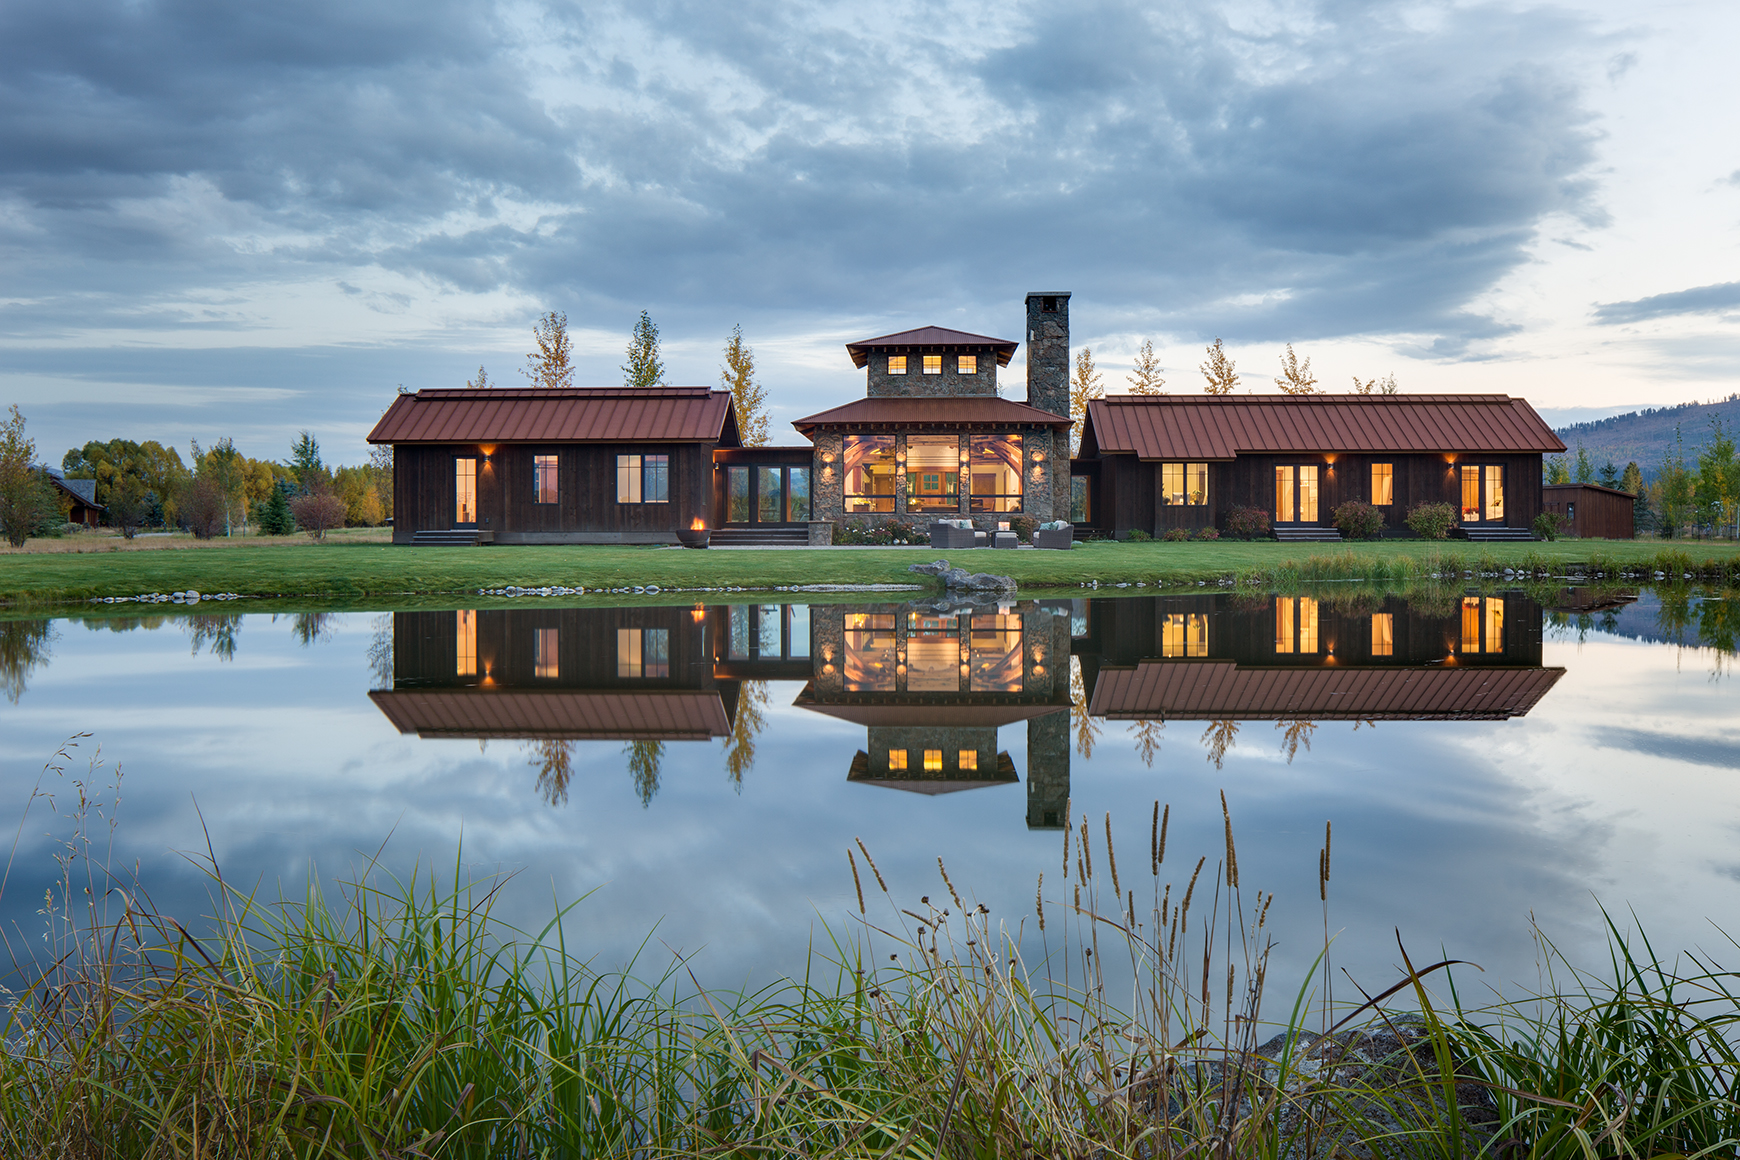 One level contemporary home siting on the edge of a pond at dusk with mirrored reflections.